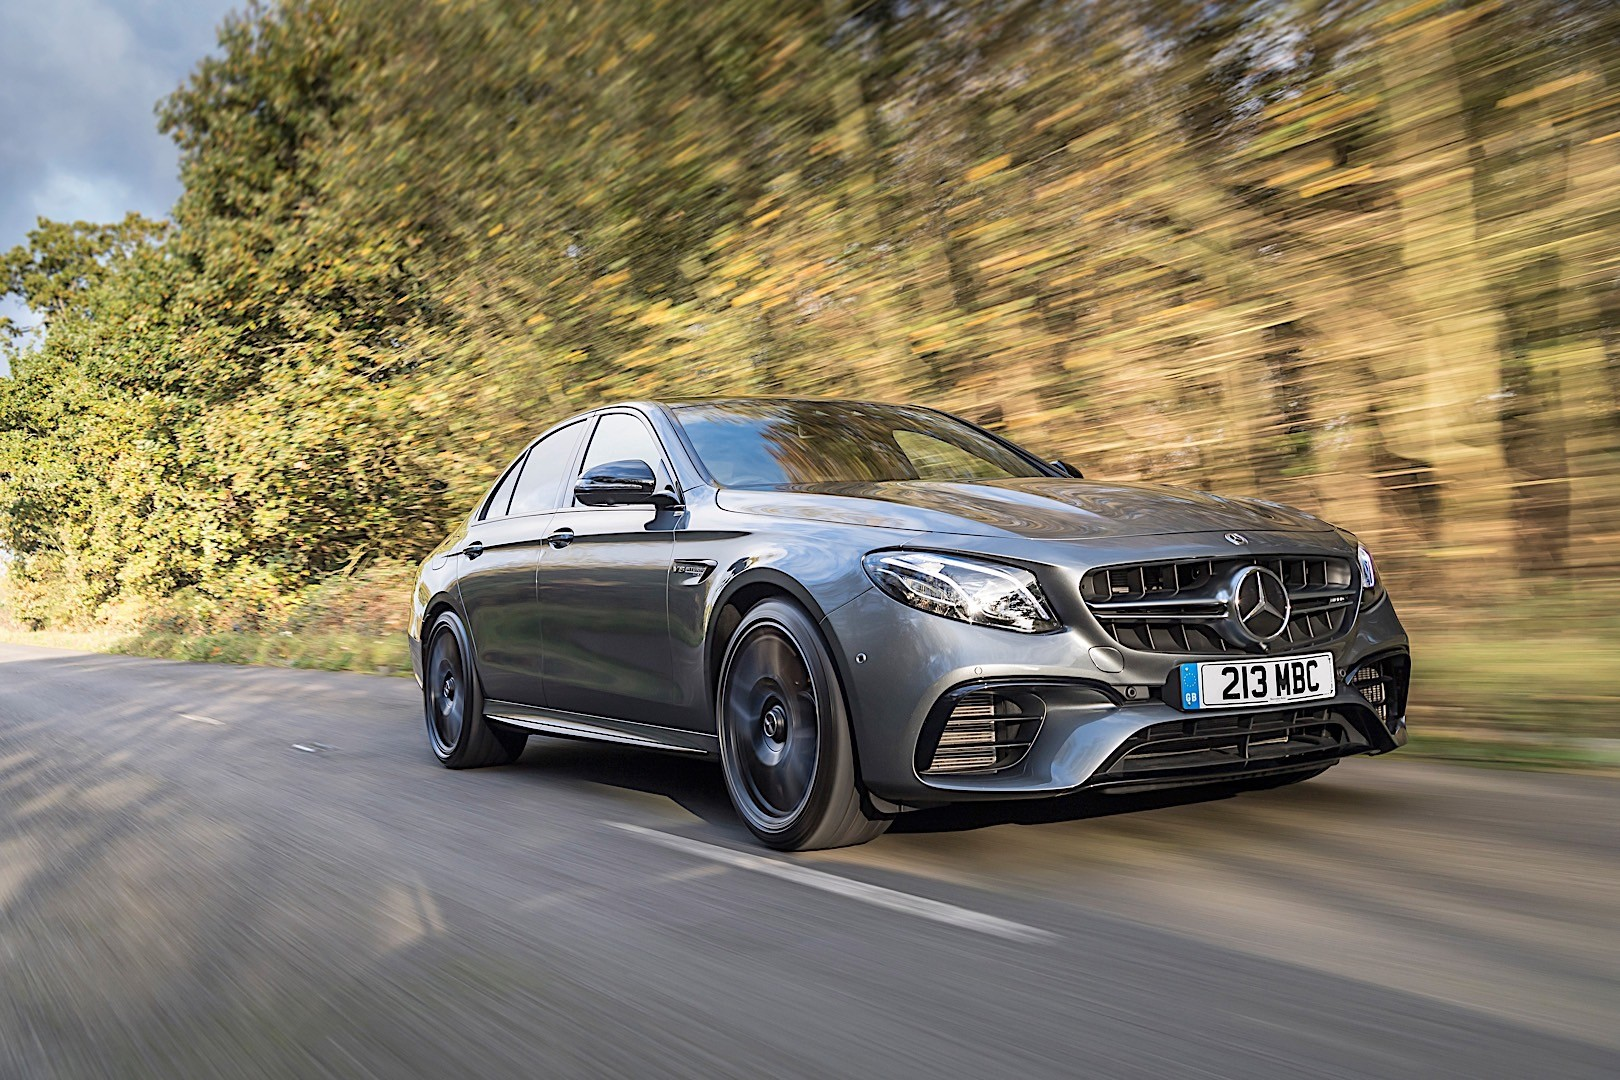 2016 Mercedes Benz Amg E 63 Sedan >> MERCEDES BENZ E 63 AMG (W213) specs & photos - 2016, 2017, 2018, 2019 - autoevolution